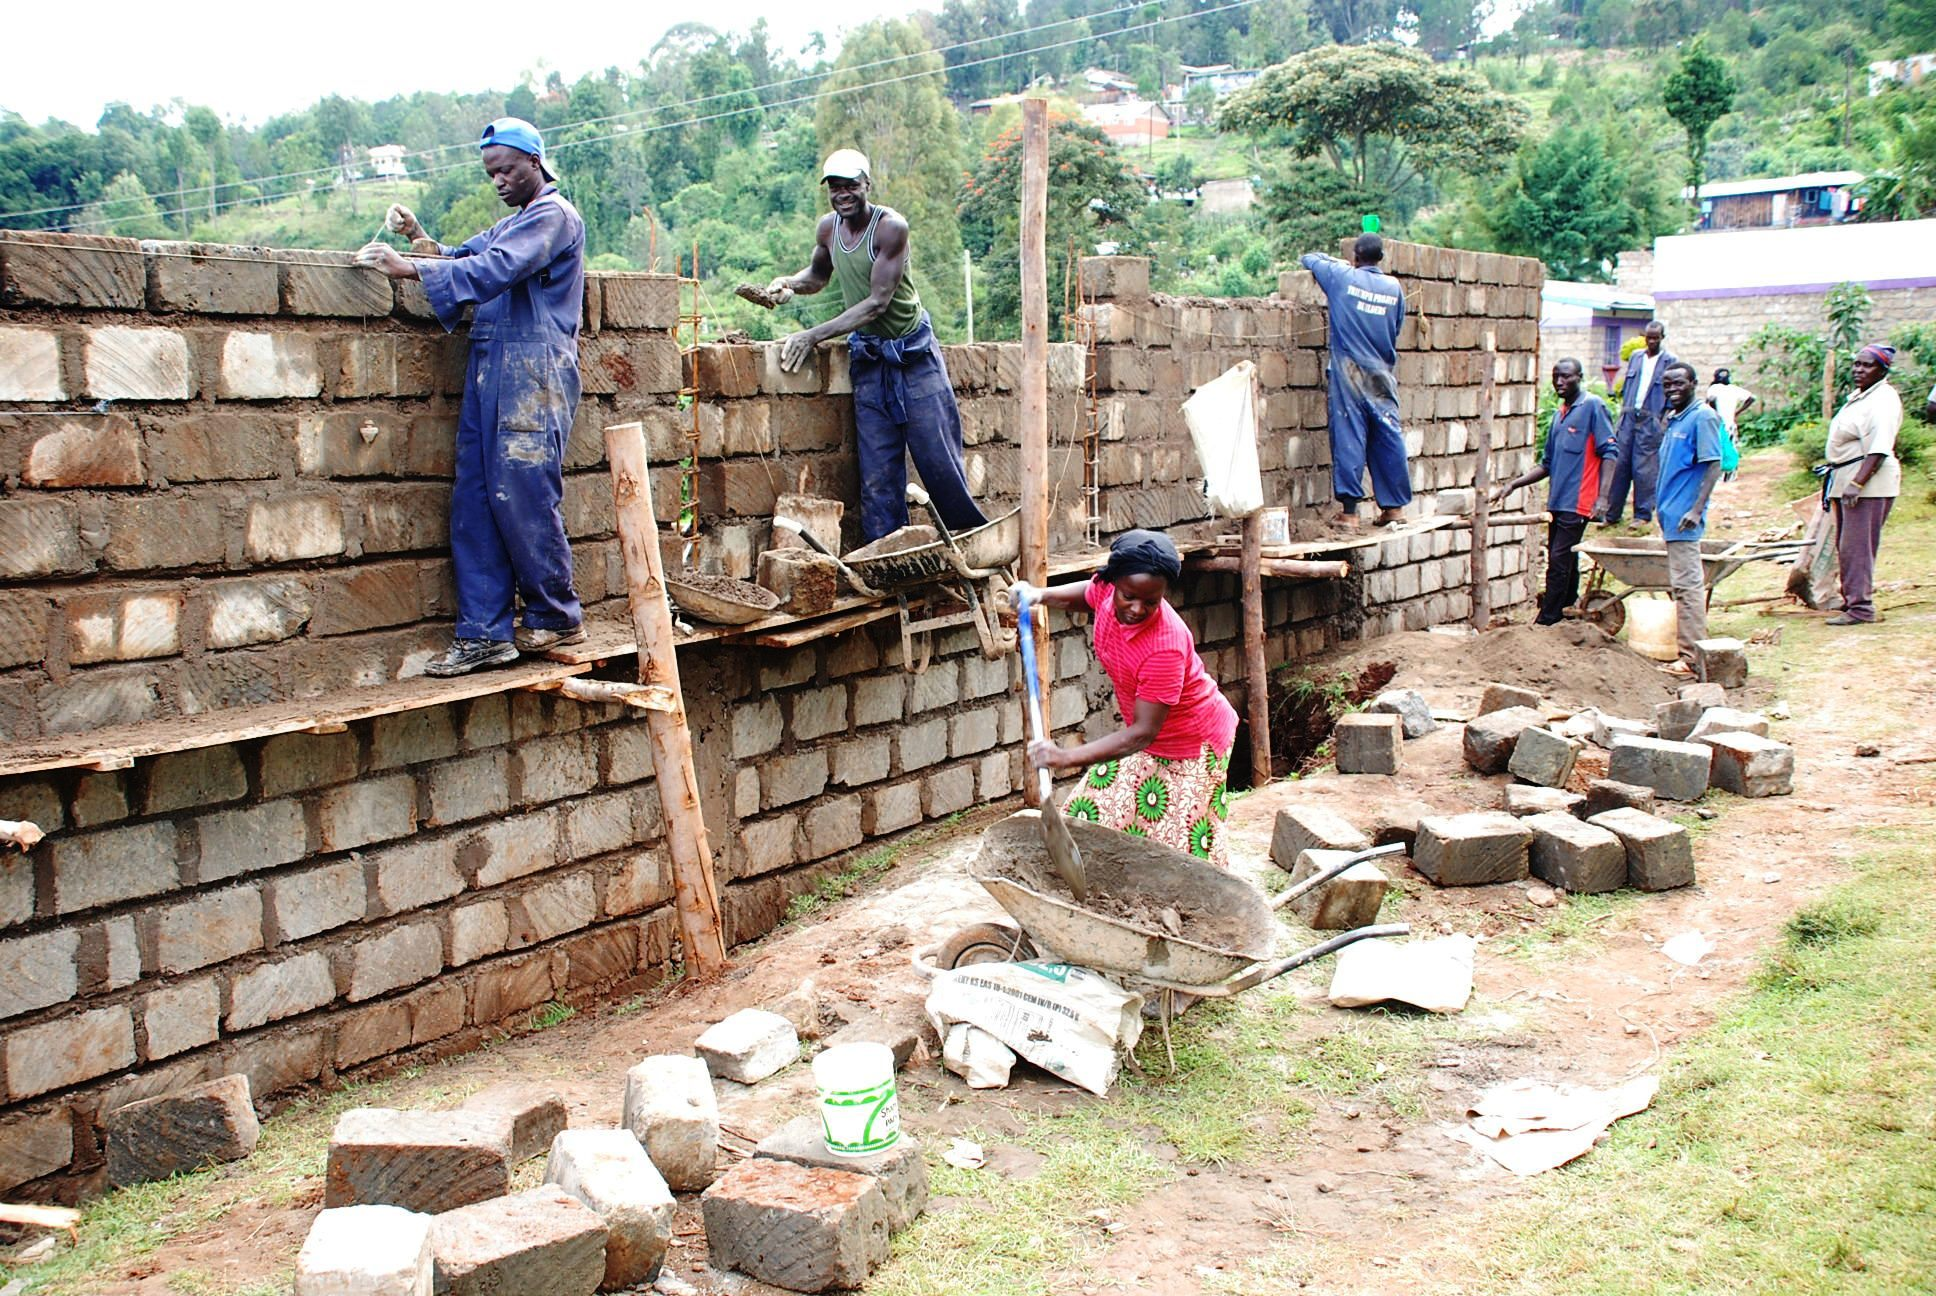 Men at work in Kabarnet Stadium during the Construction of a perimeter wall in the studium.